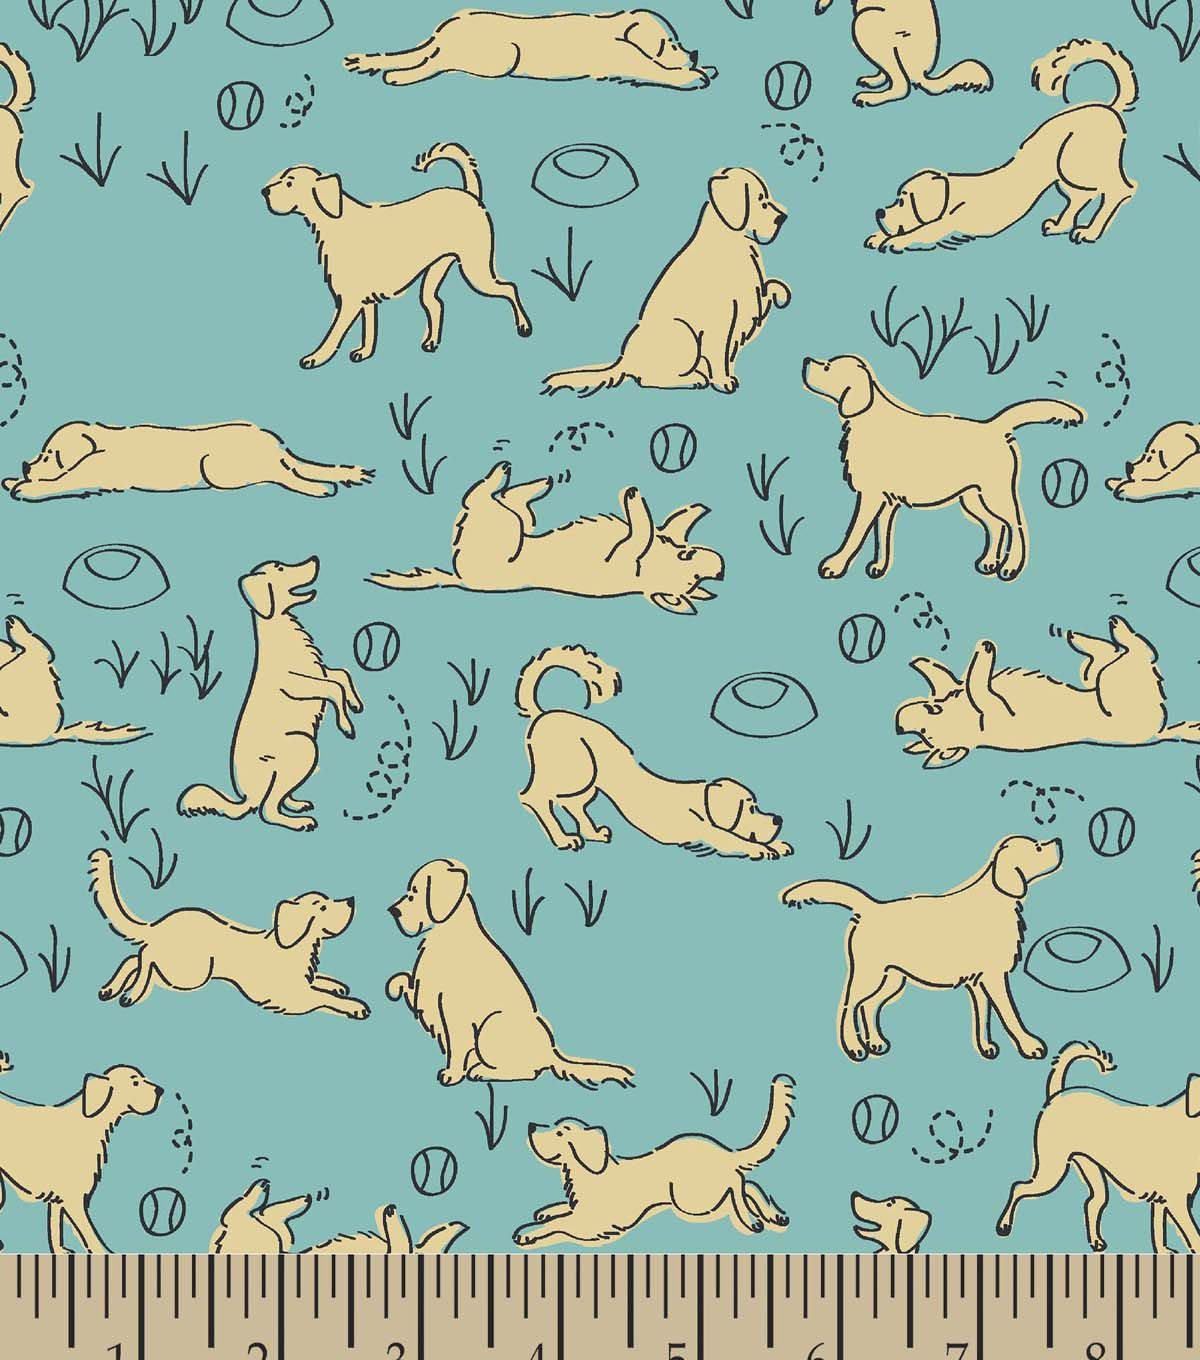 Playful Golden Retriever Print Fabric